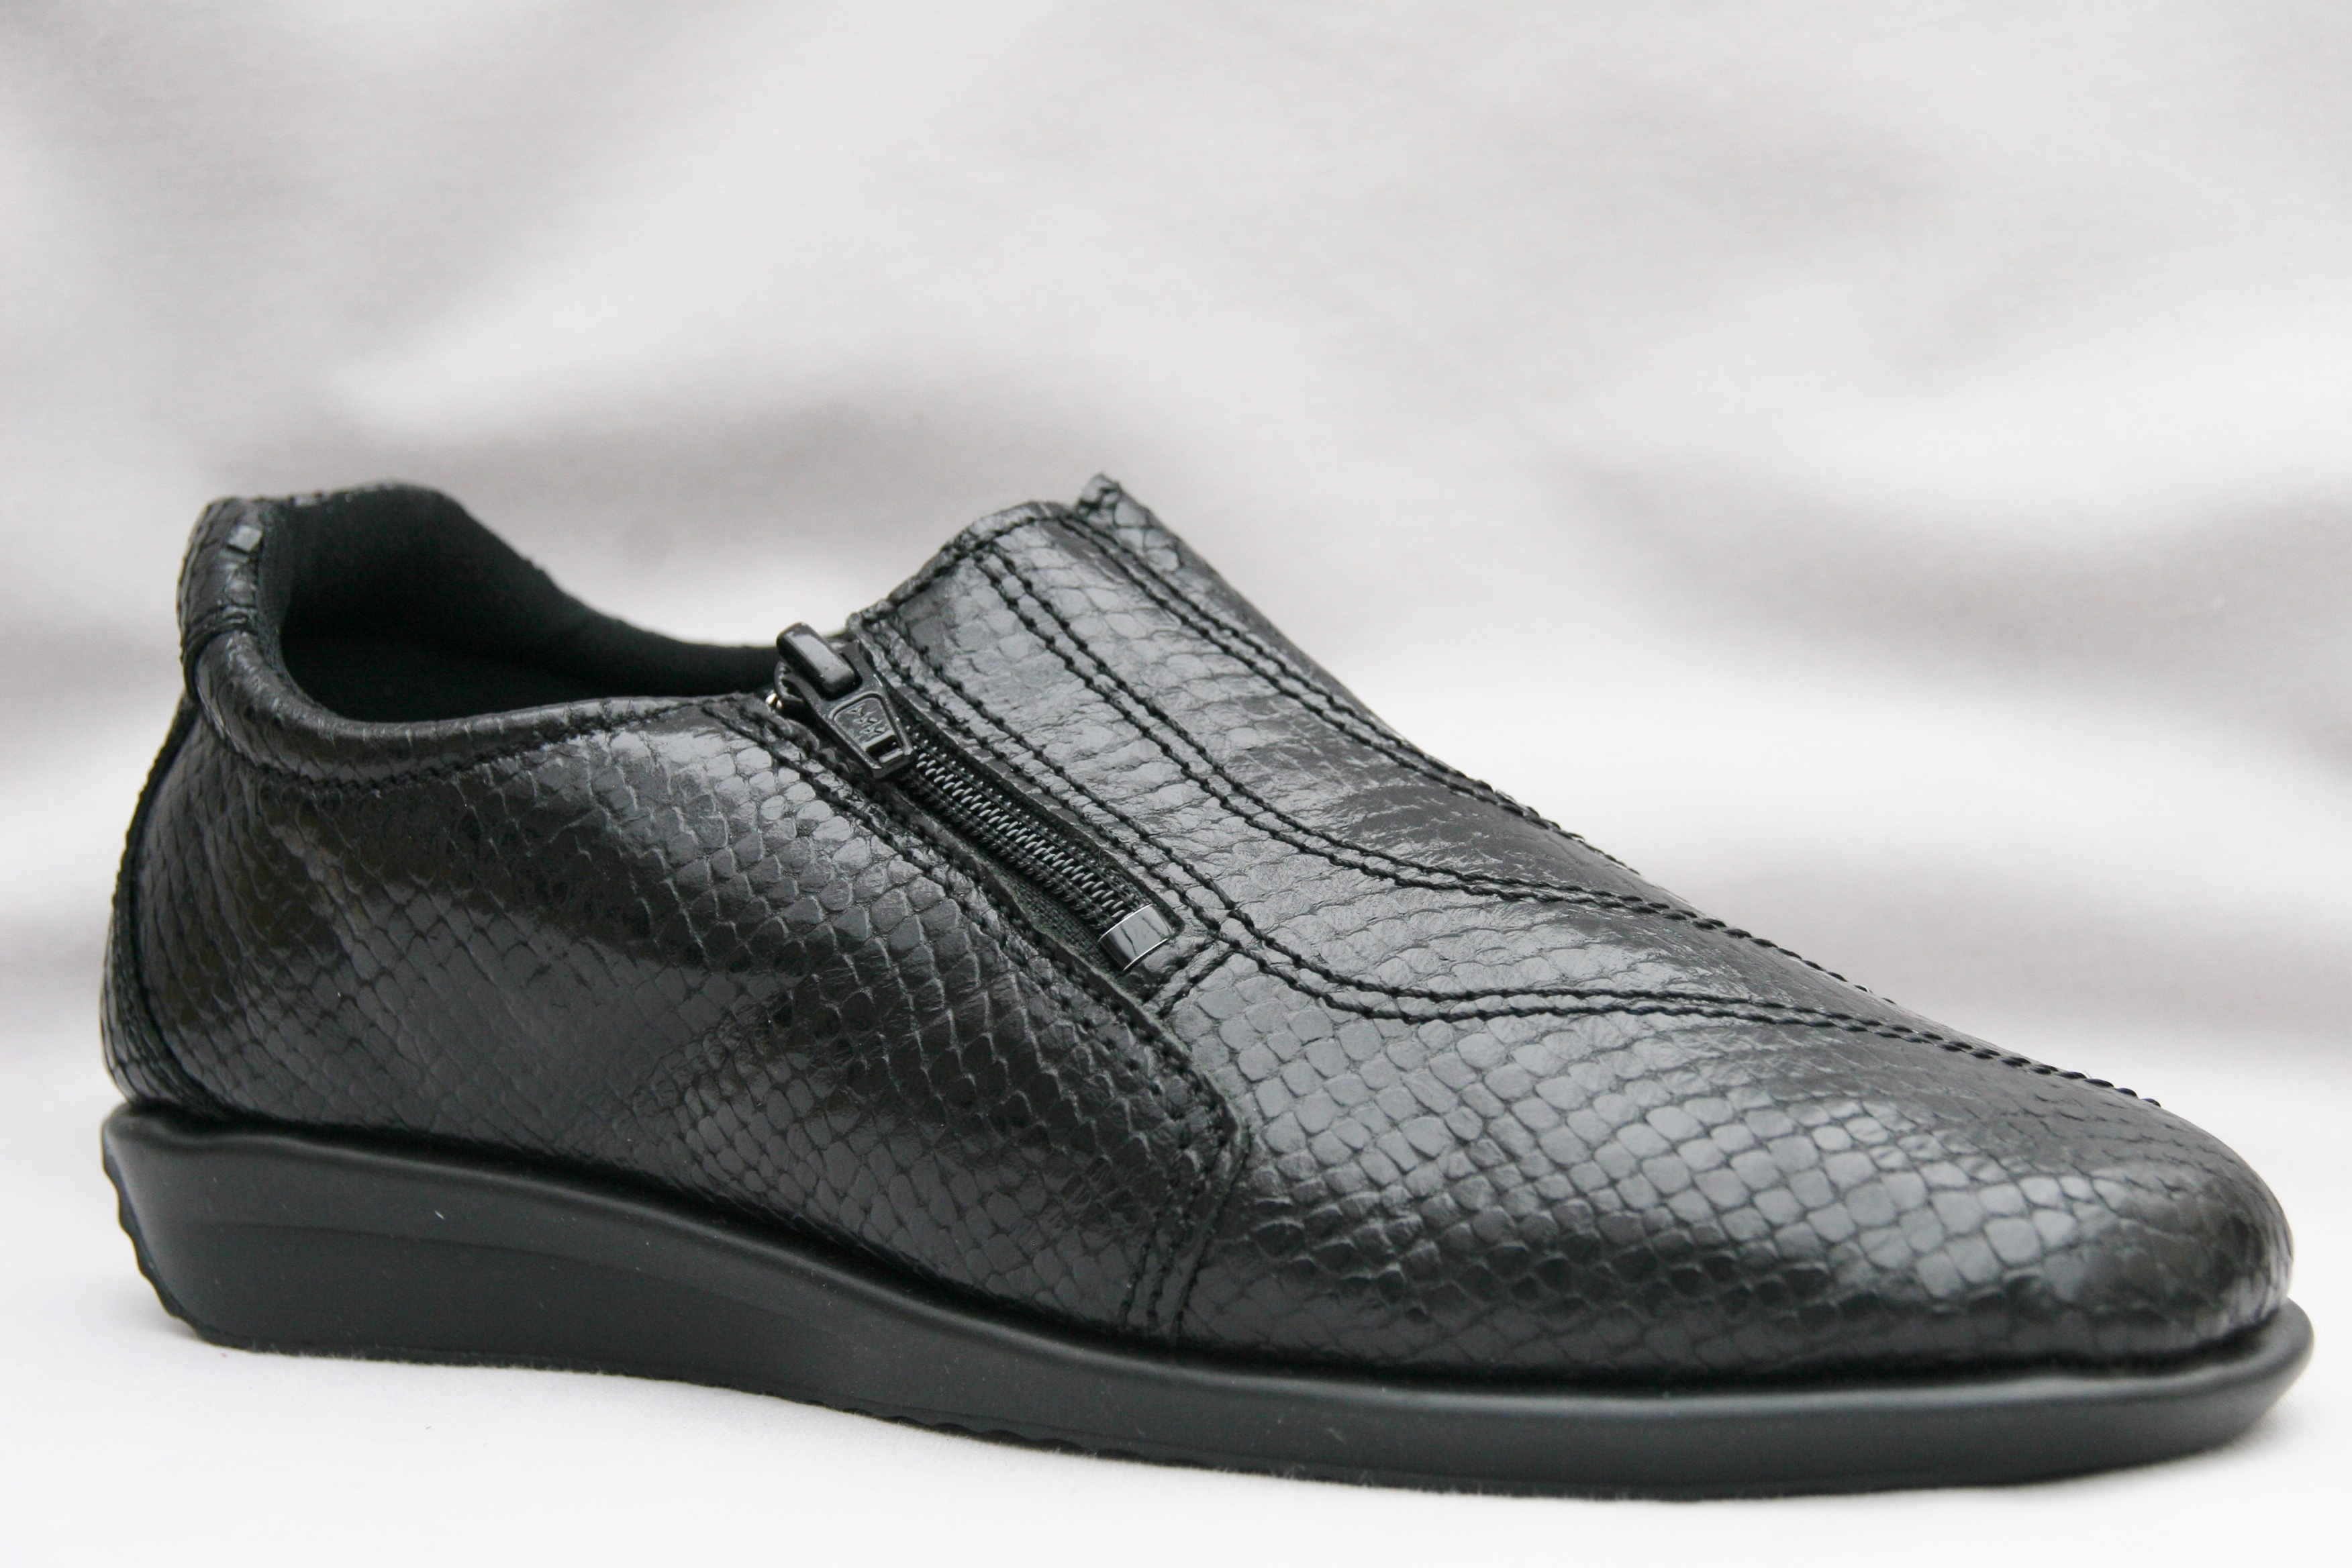 Flexishoe Black Shiny Cobra